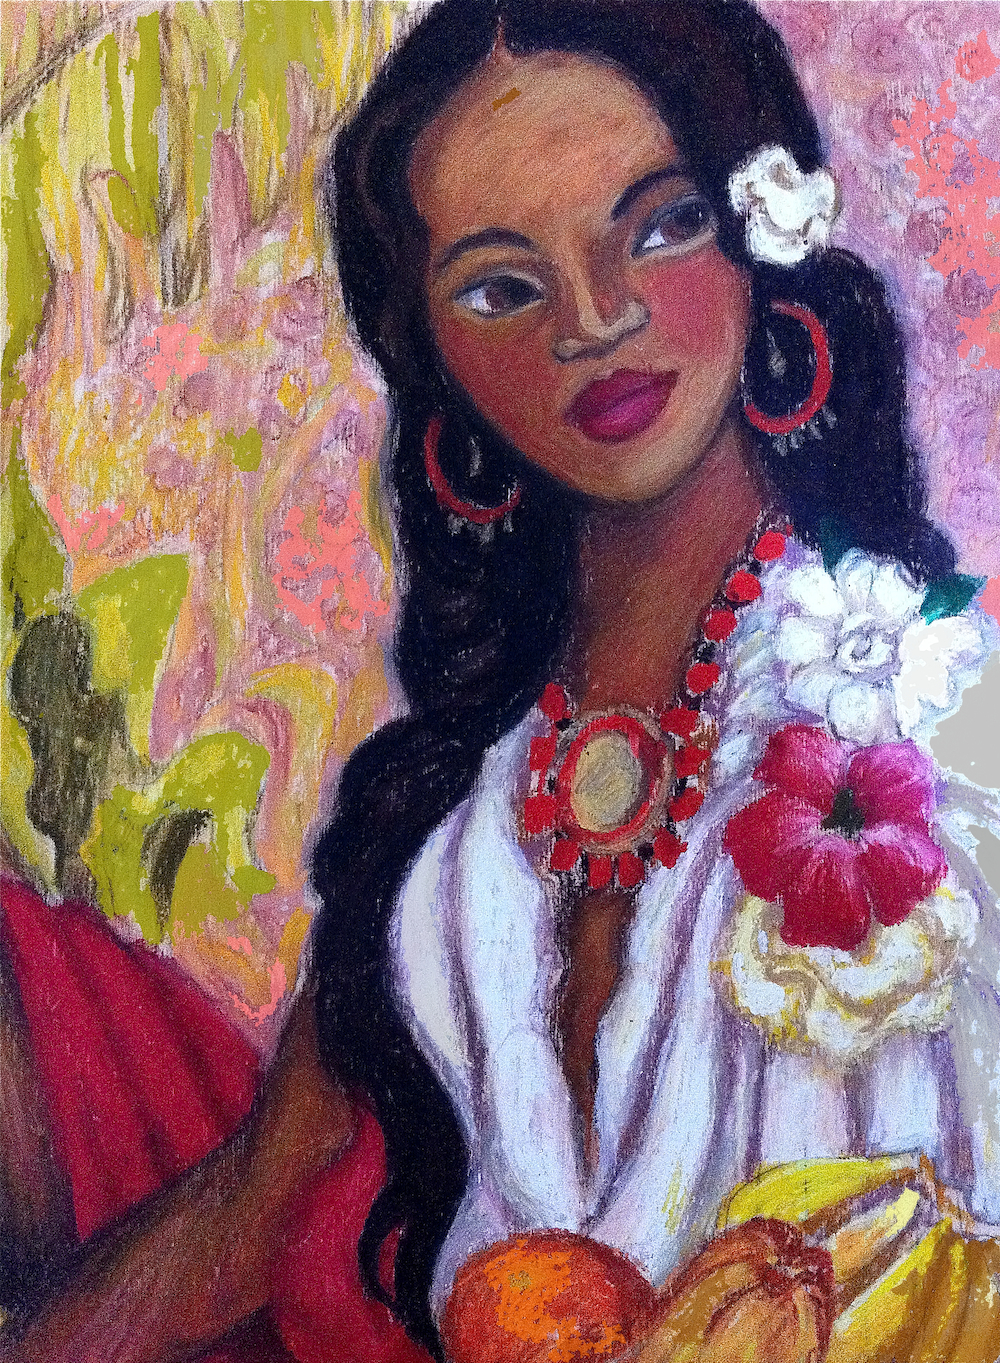 Painting by Irene Carranza